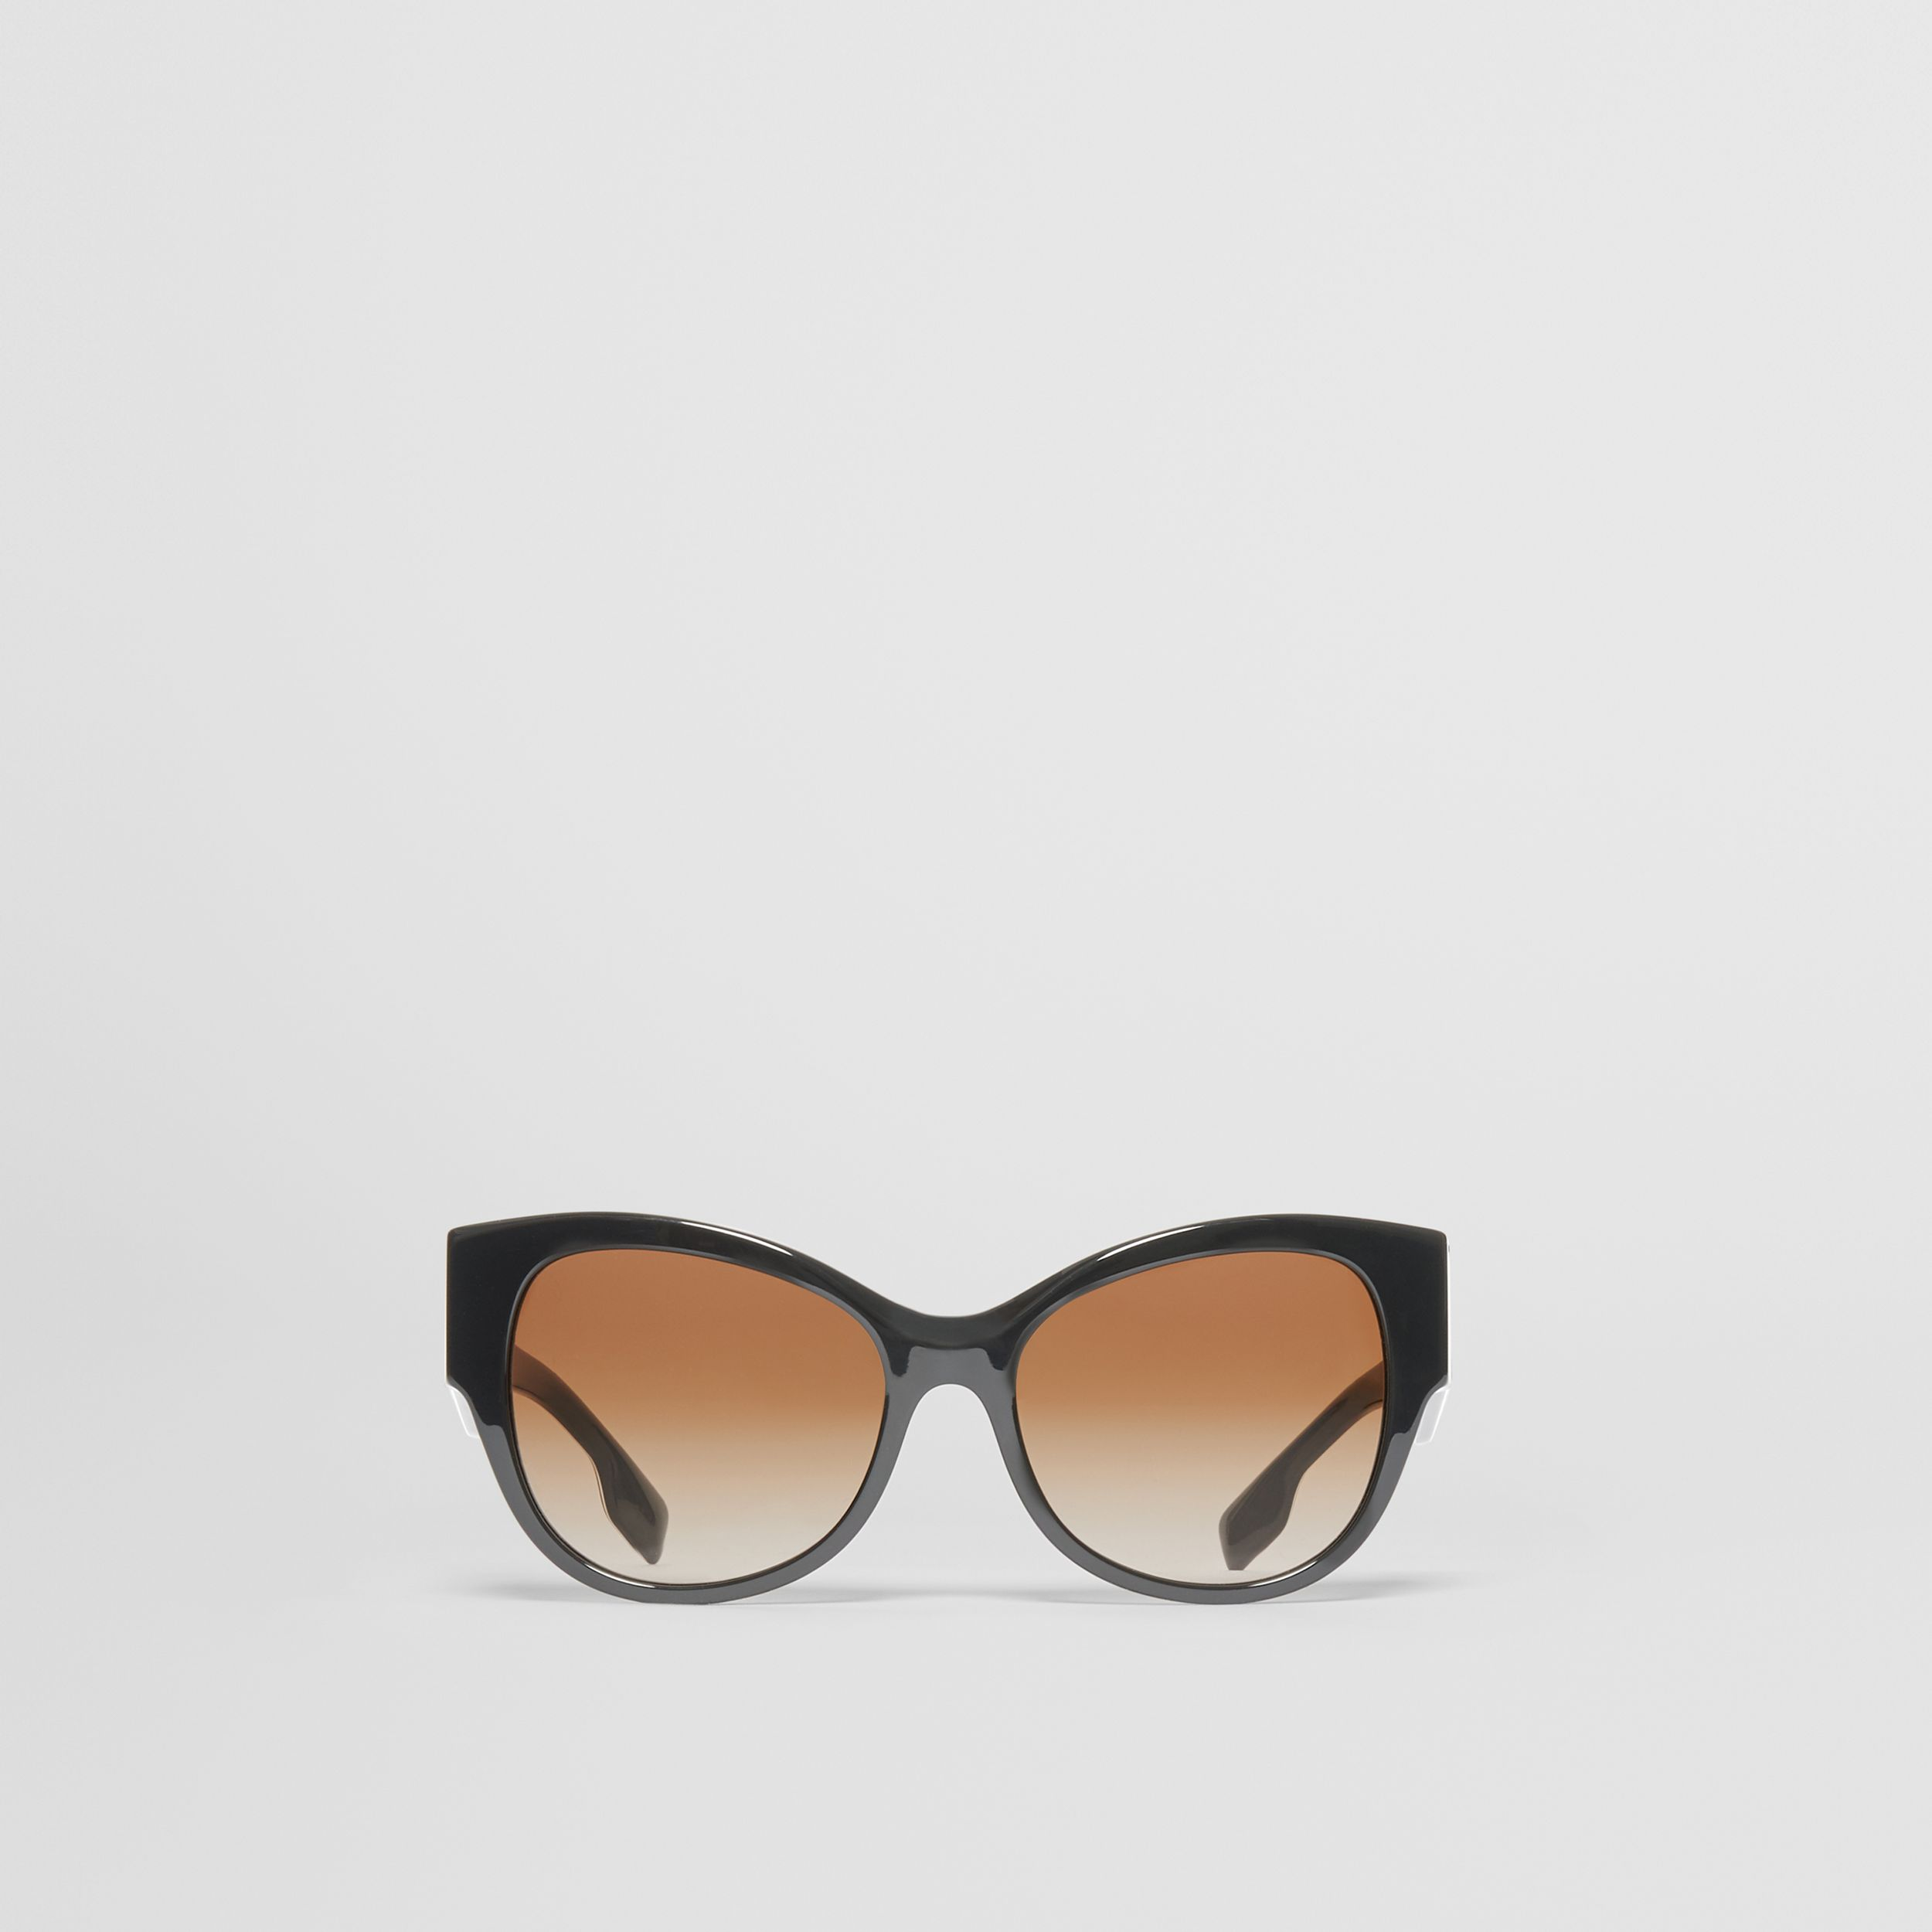 Monogram Detail Butterfly Frame Sunglasses in Black / Beige - Women | Burberry Australia - 1